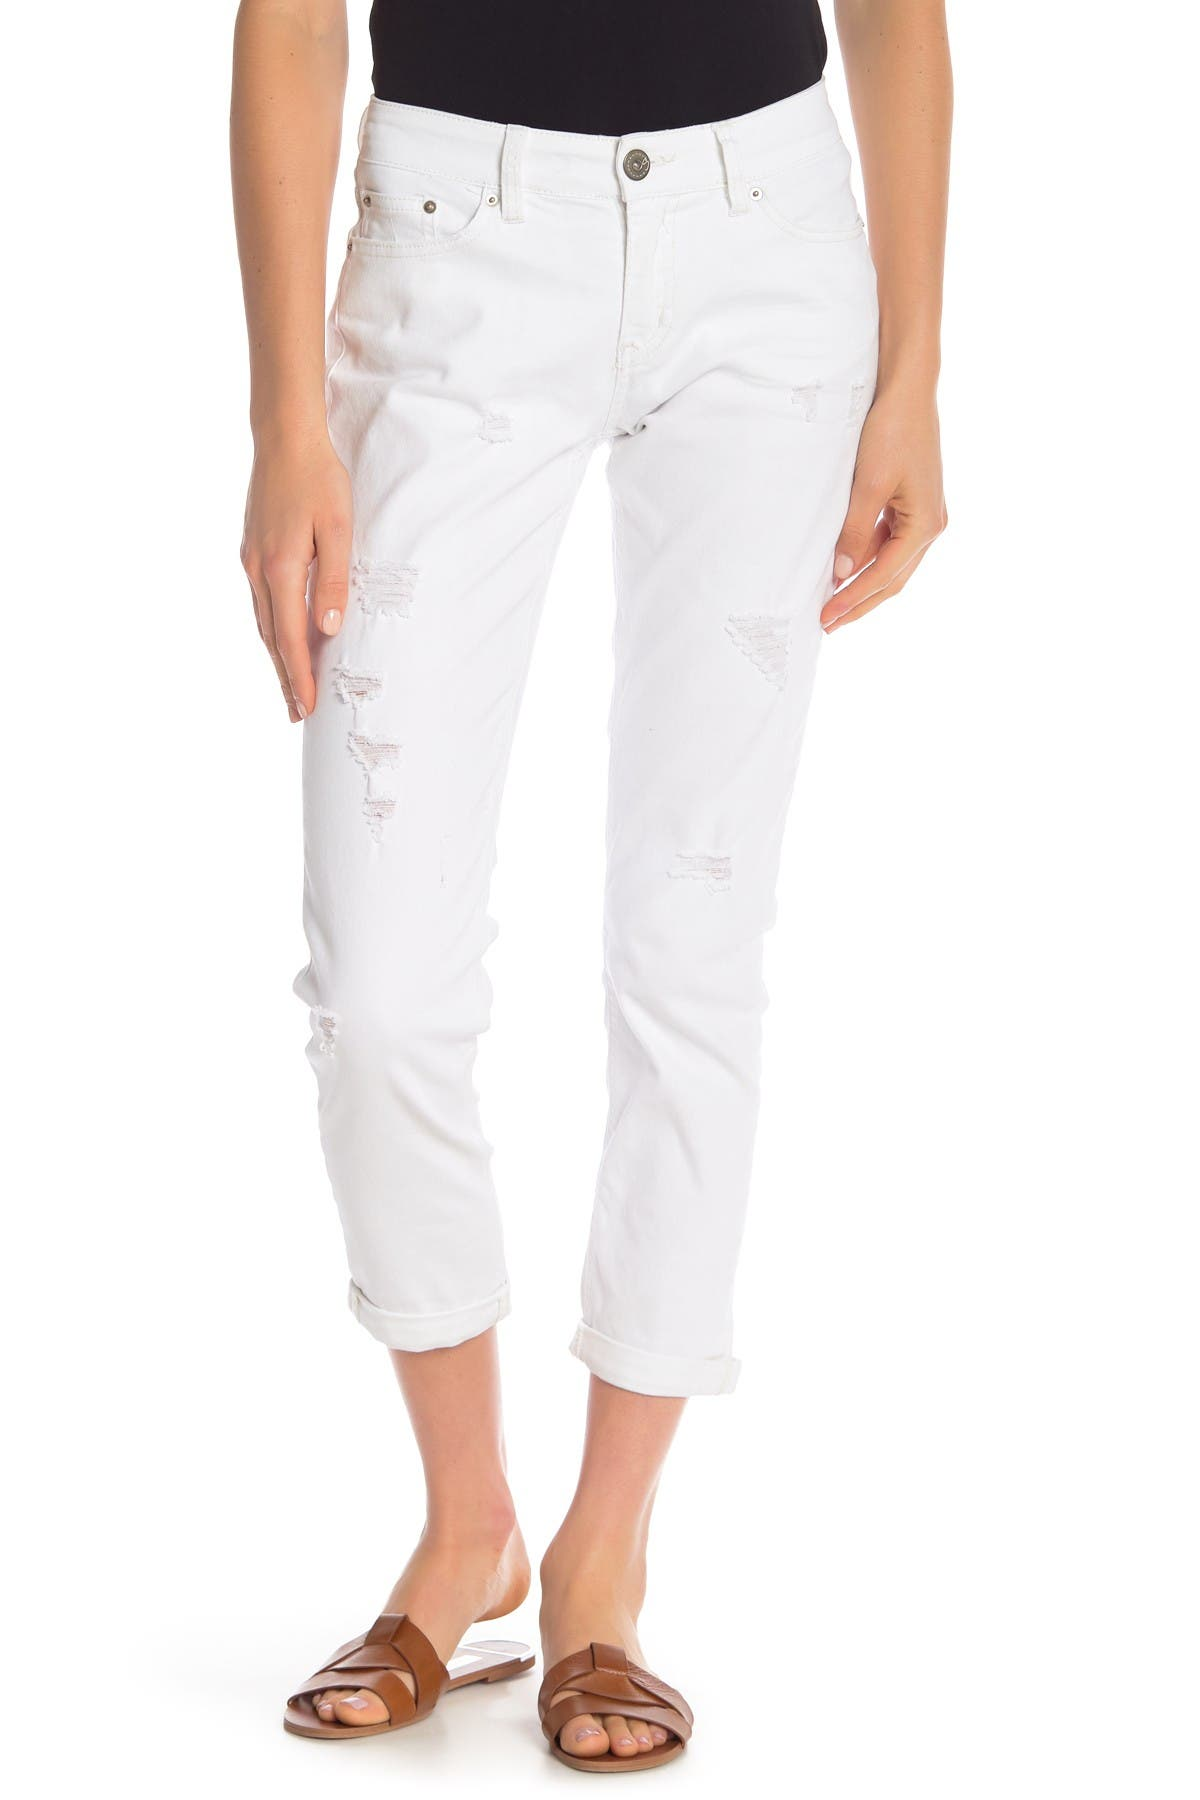 Image of SUPPLIES BY UNION BAY Marni Distressed Skinny Ankle Jeans